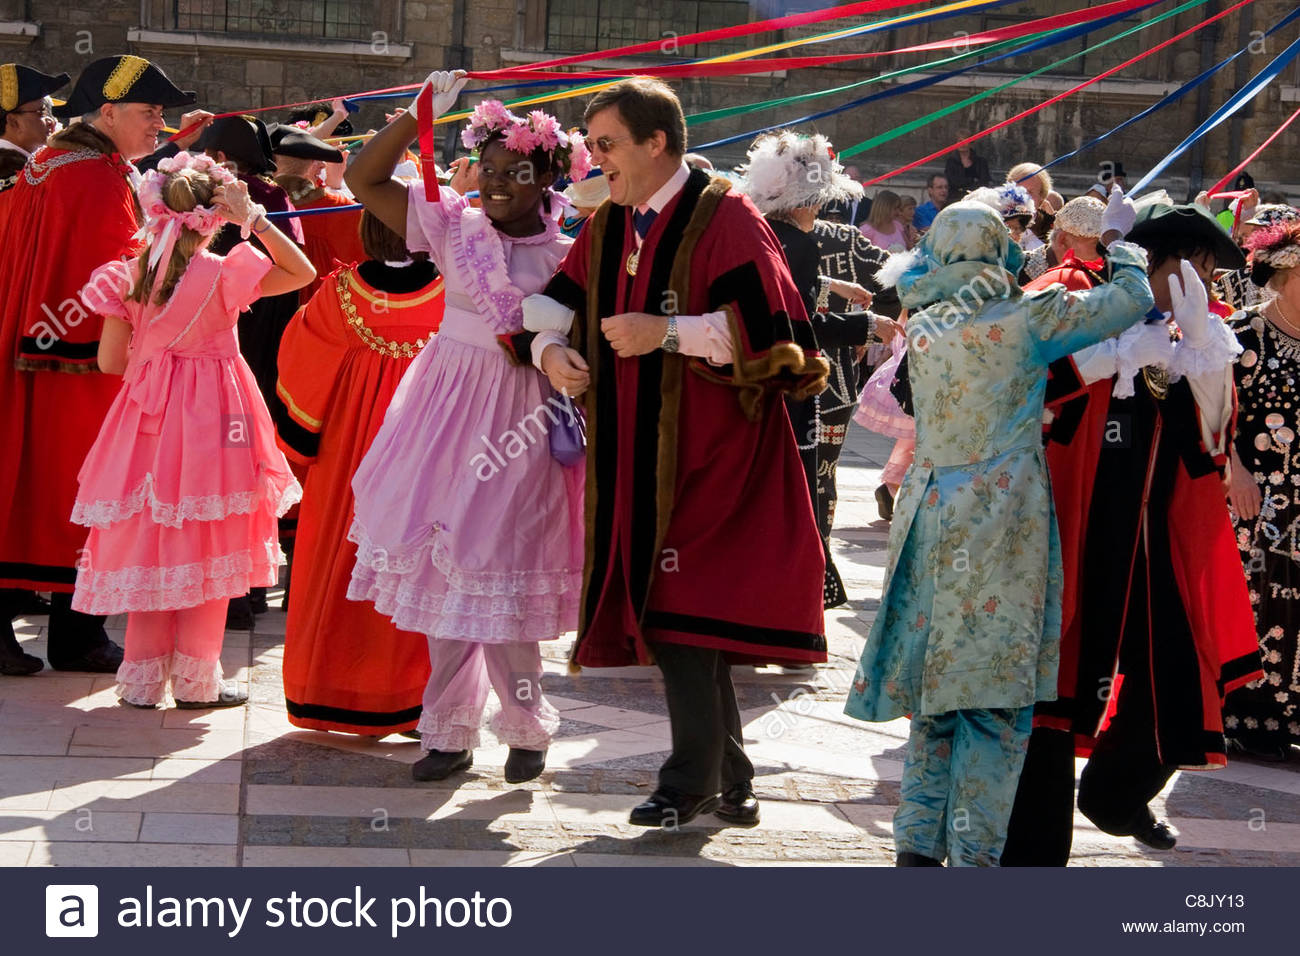 Londoners: Costermongers' Harvest Festival Parade at Guildhall in City of London - Stock Image